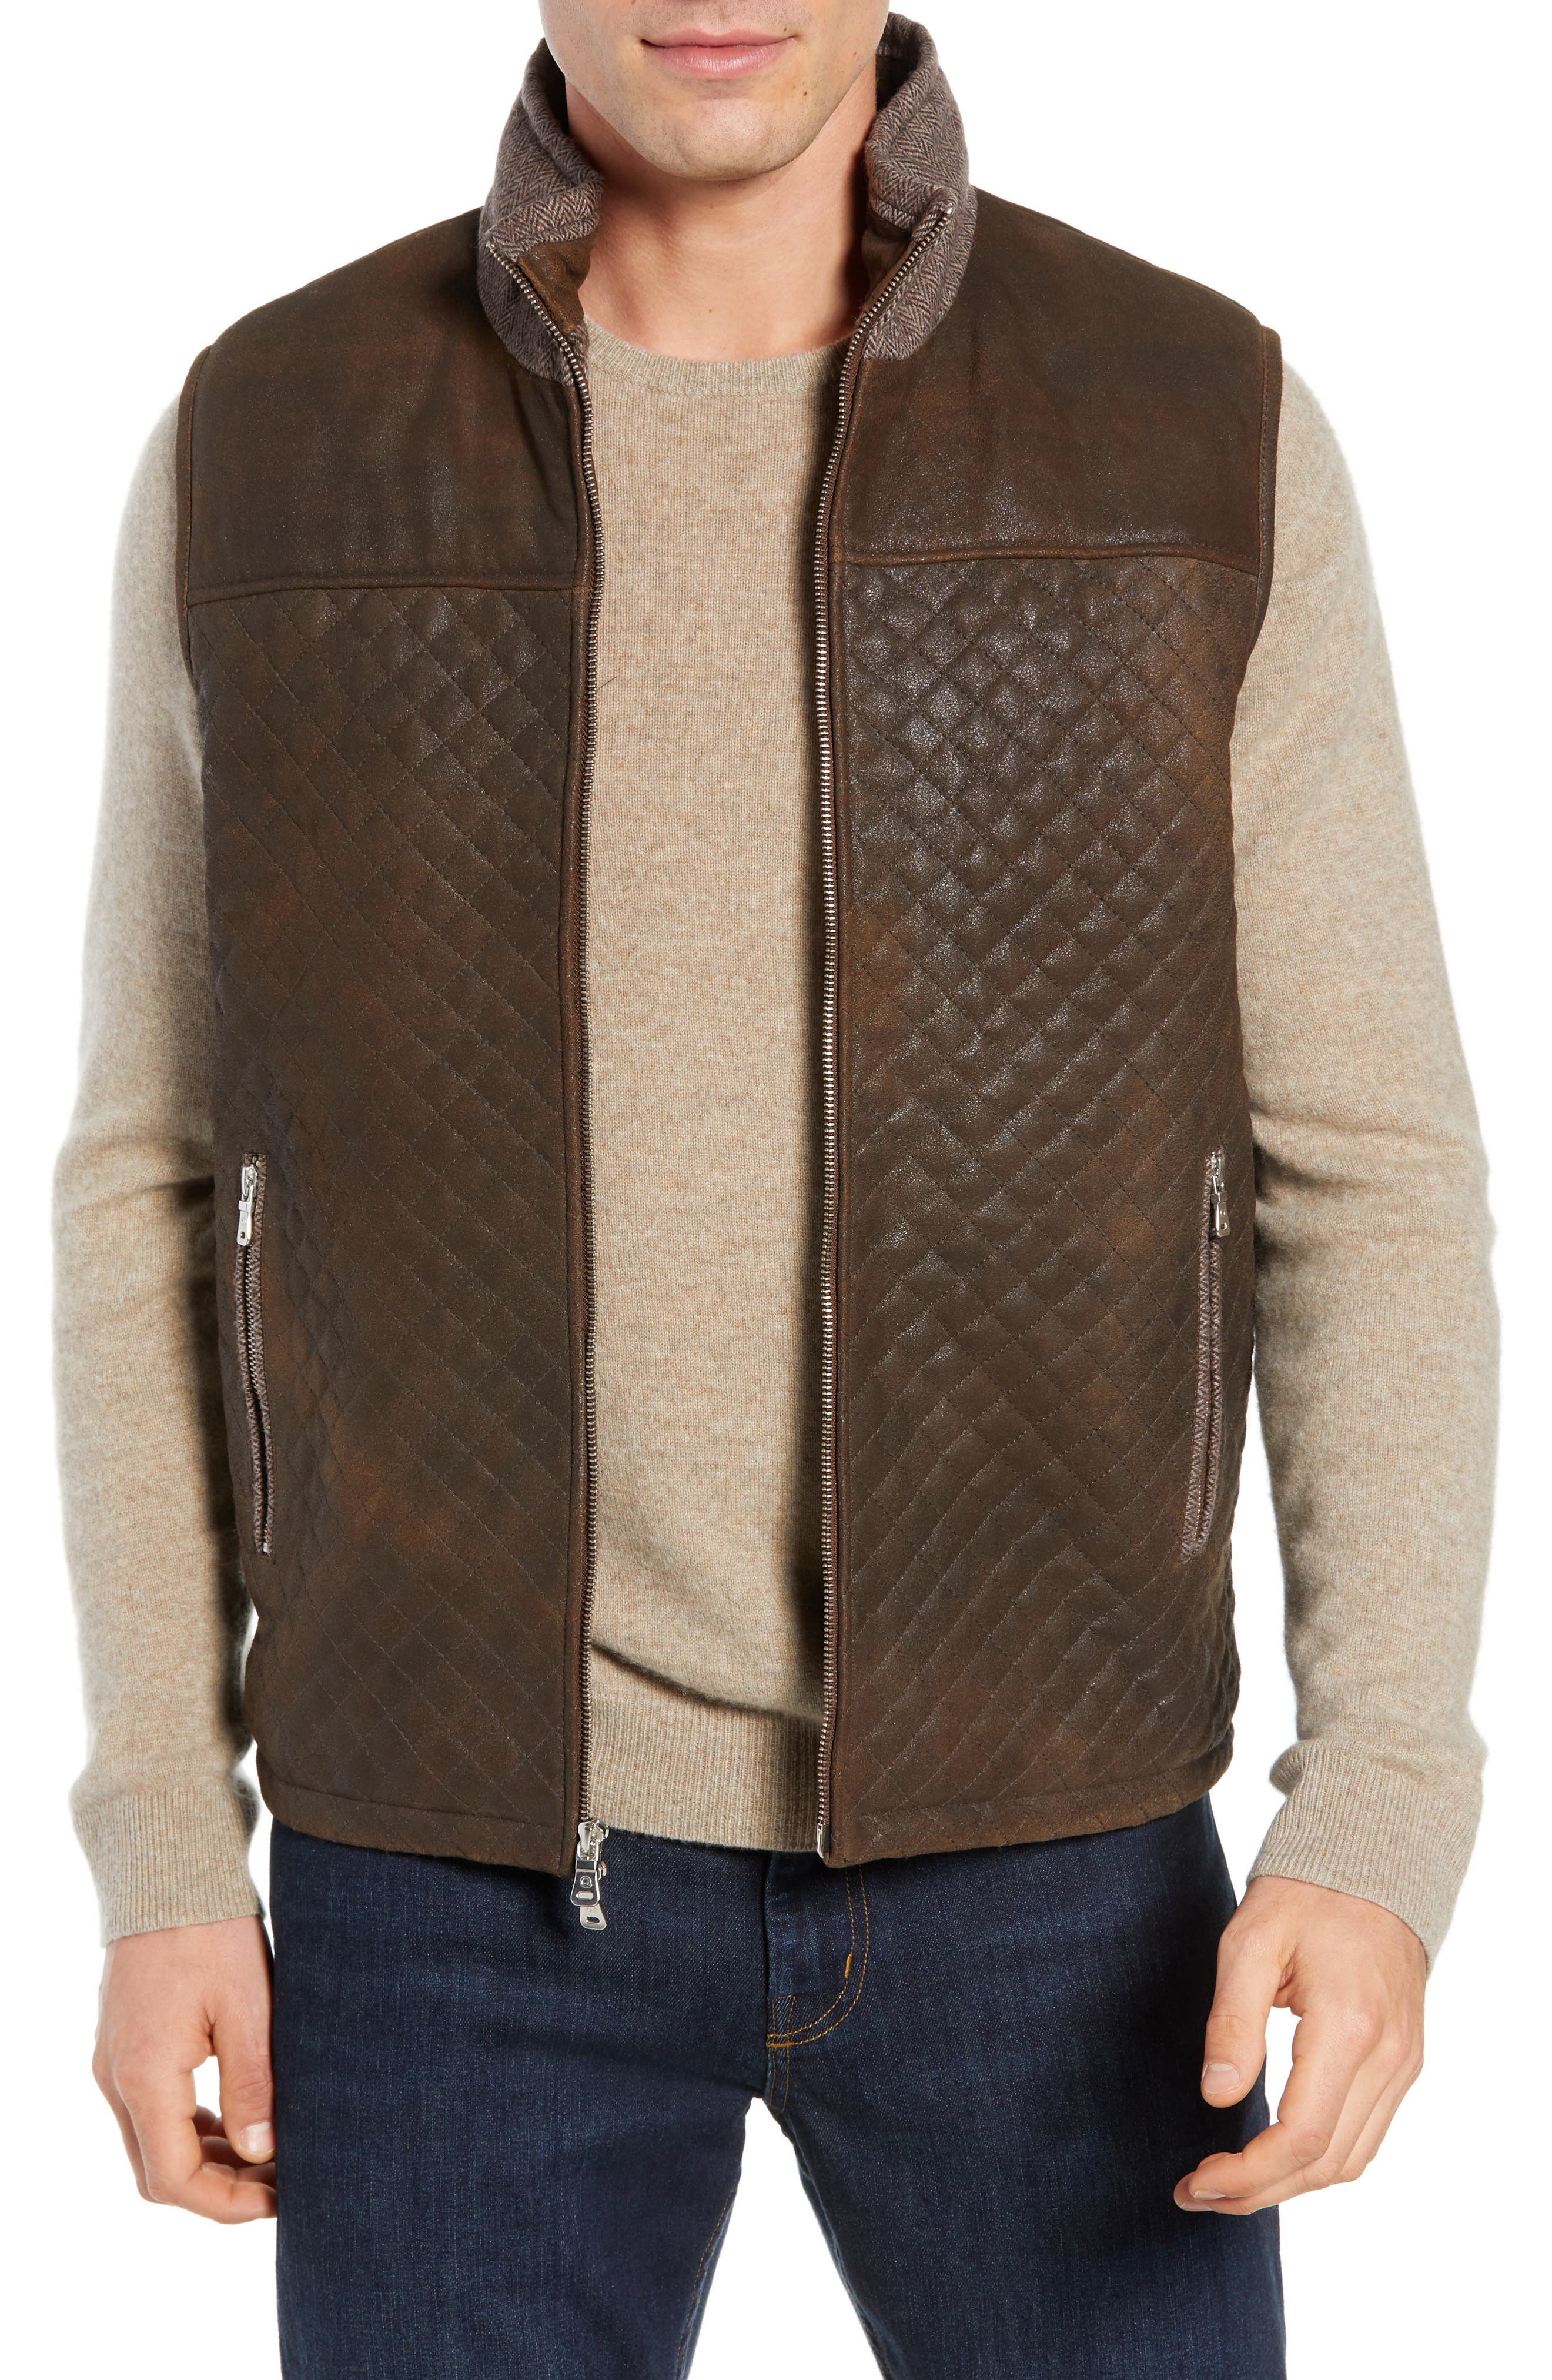 Quilted Leather & Wool Vest,                             Main thumbnail 1, color,                             201